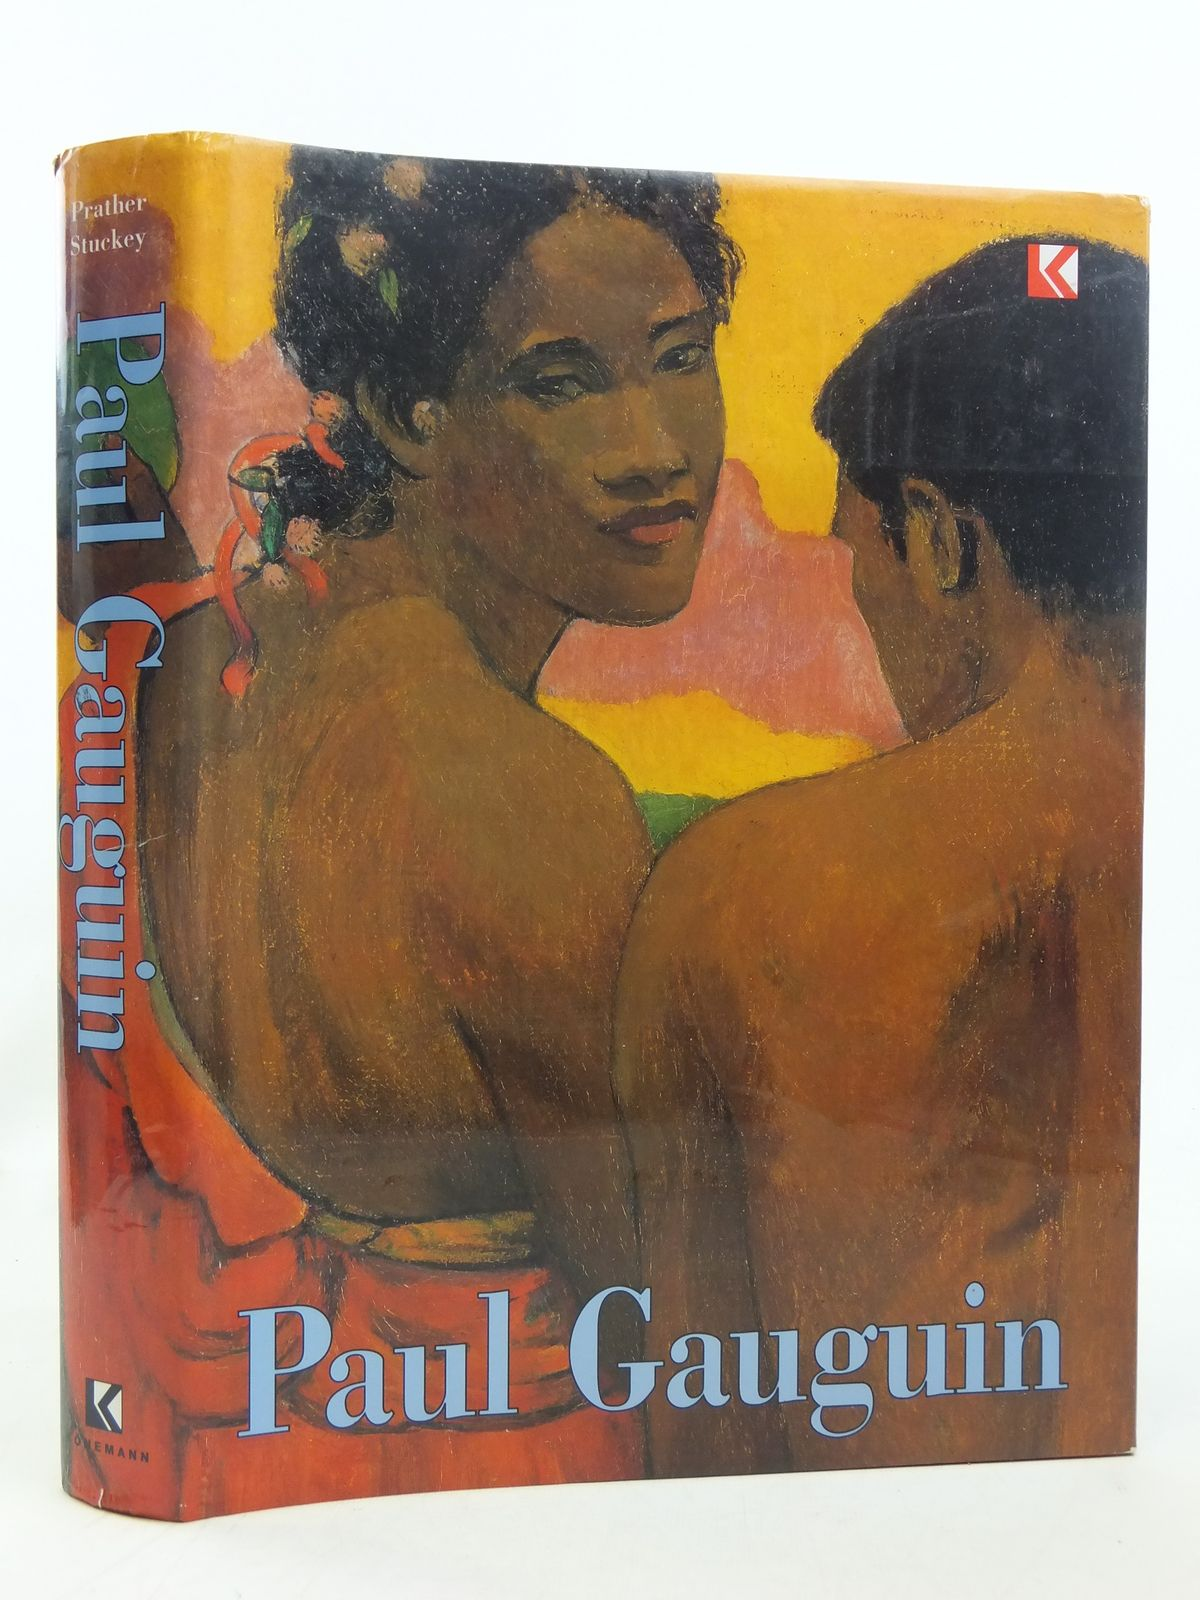 Photo of PAUL GAUGUIN written by Prather, Marla<br />Stuckey, Charles F. illustrated by Gauguin, Paul published by Konemann (STOCK CODE: 1606743)  for sale by Stella & Rose's Books